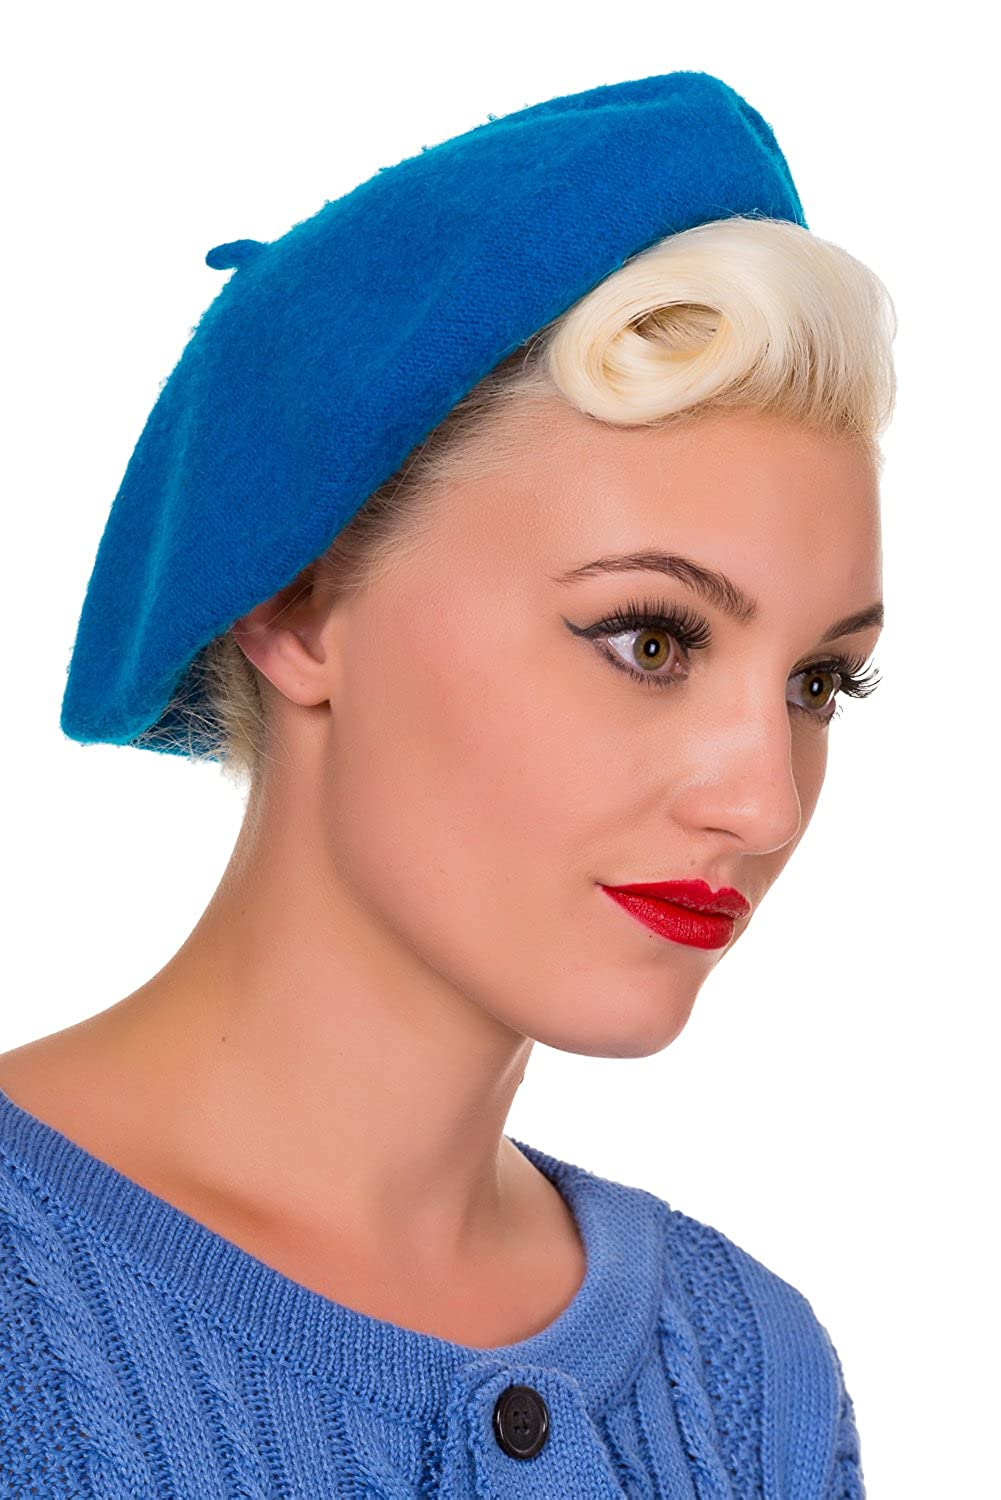 1950s Women's Hat Styles & History Banned Claire Vintage Retro Beret Hat $15.95 AT vintagedancer.com